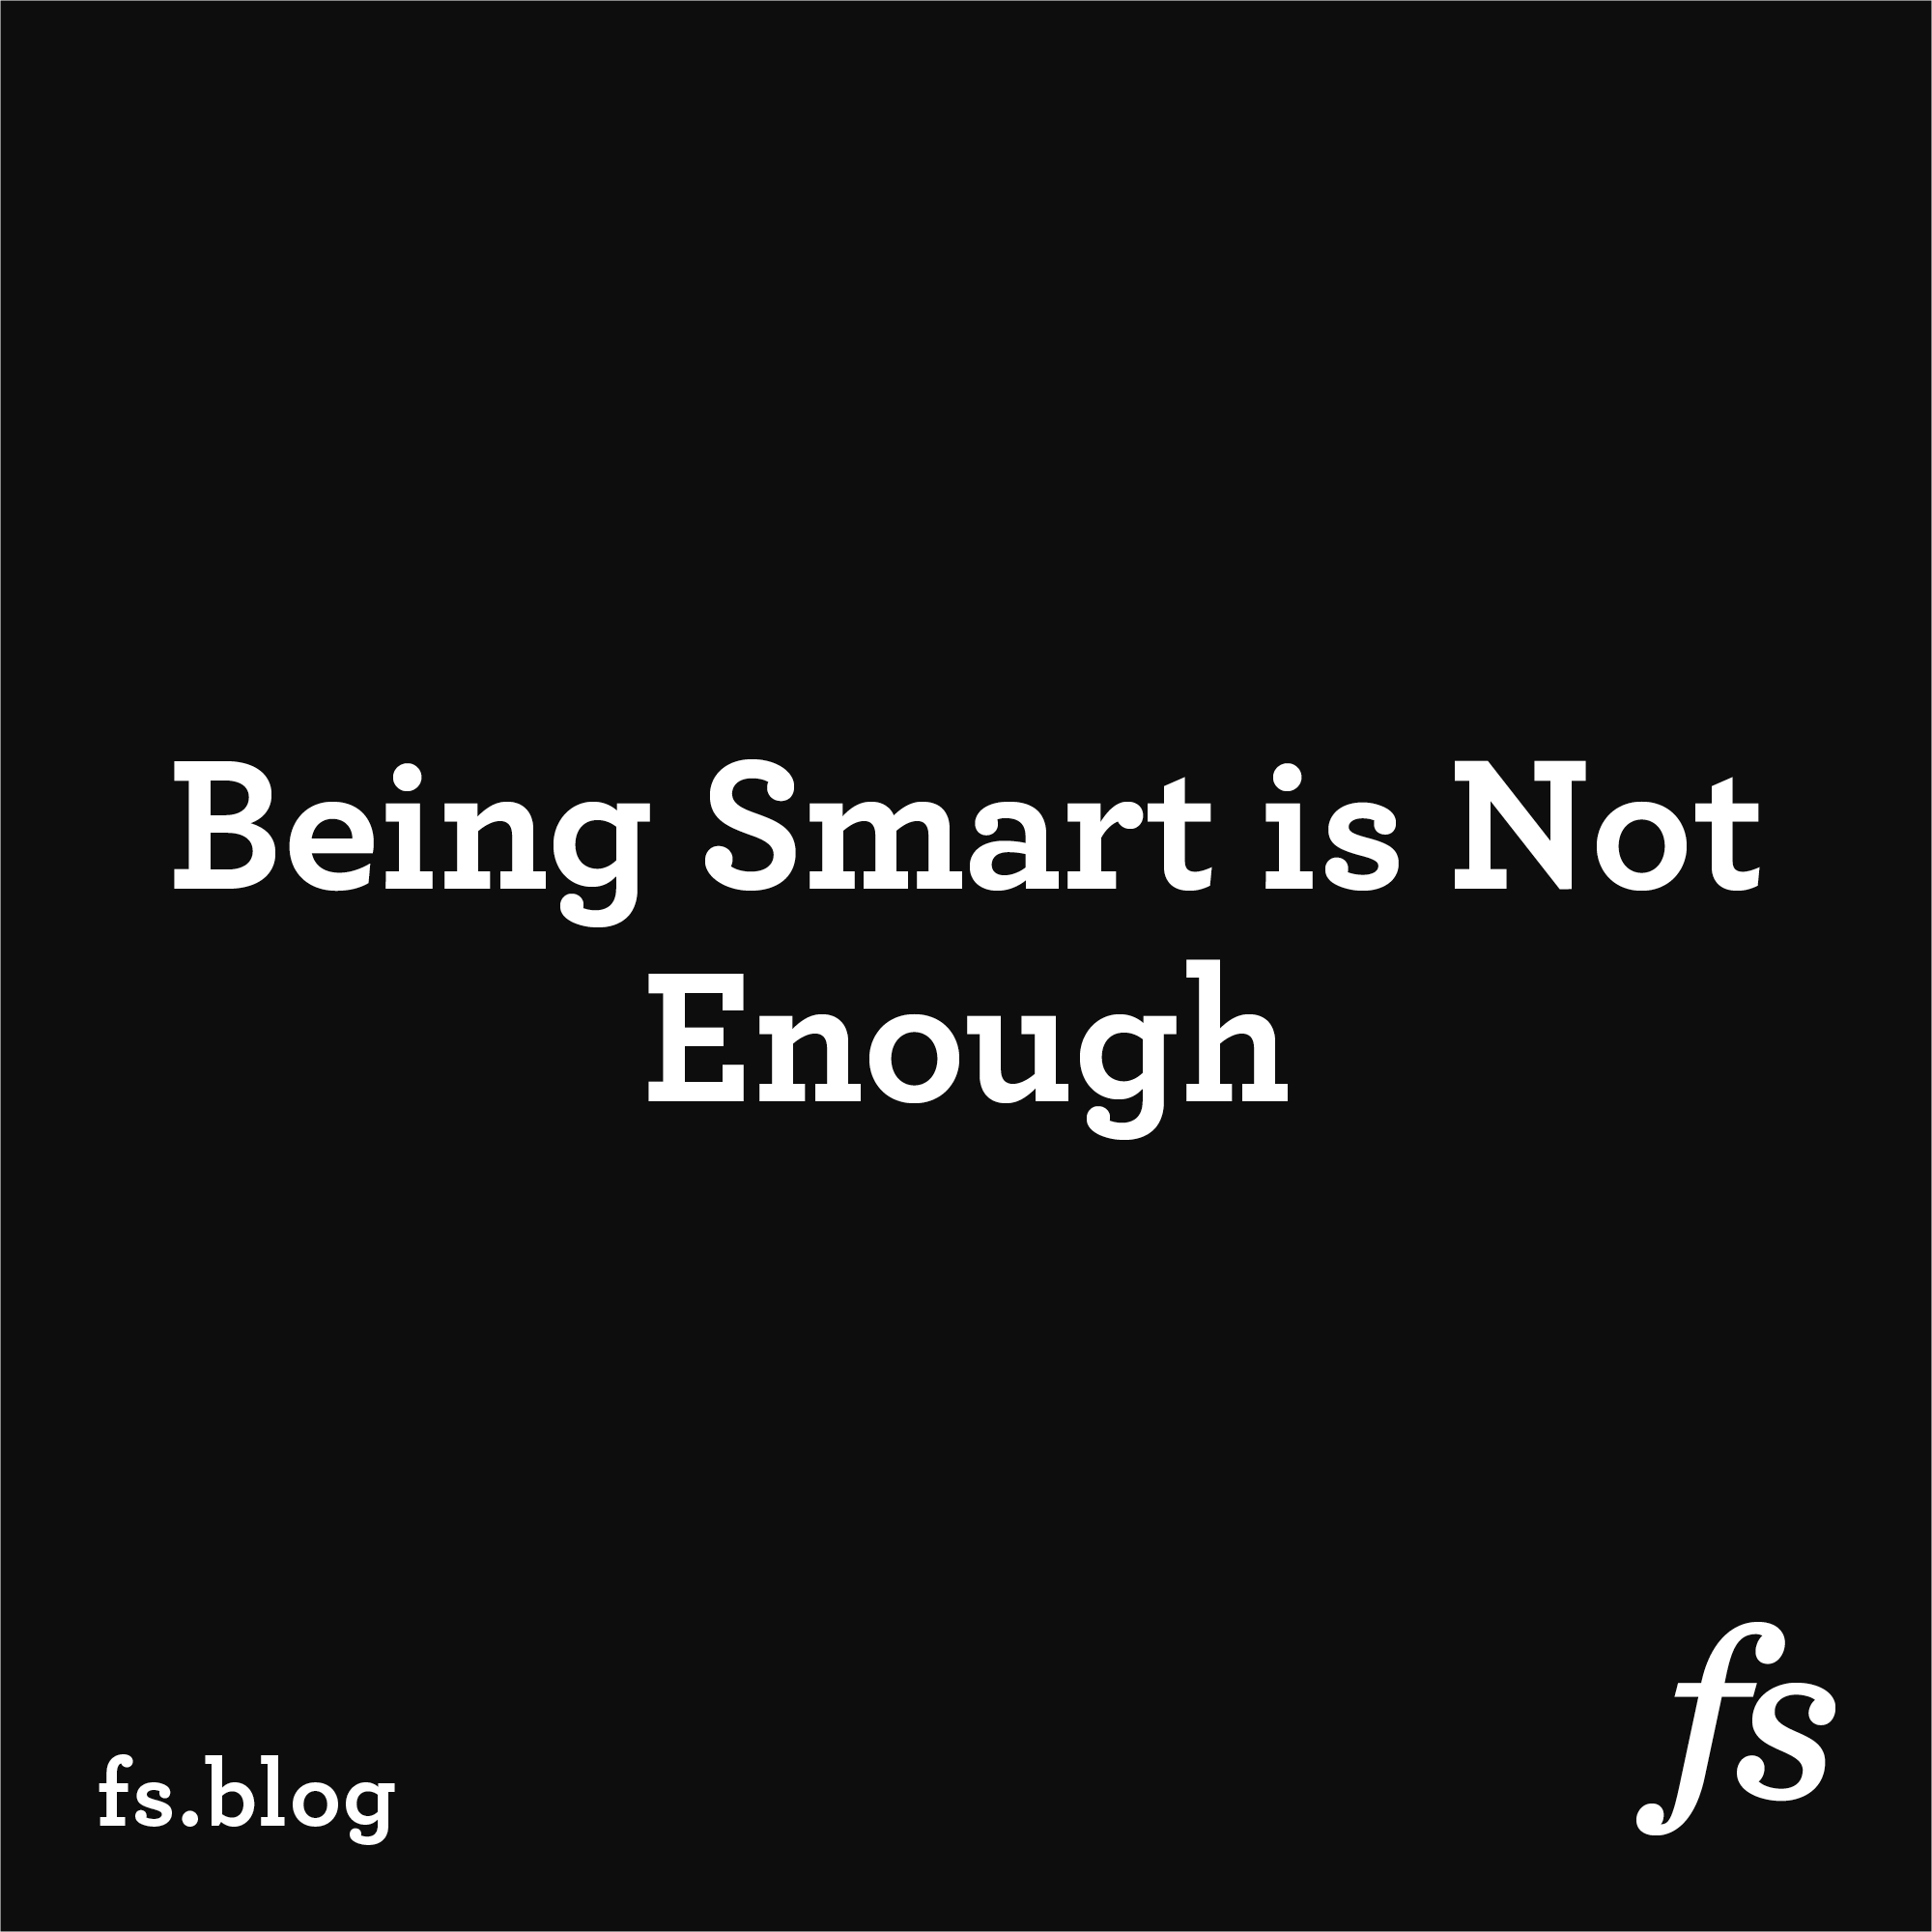 Being Smart is Not Enough